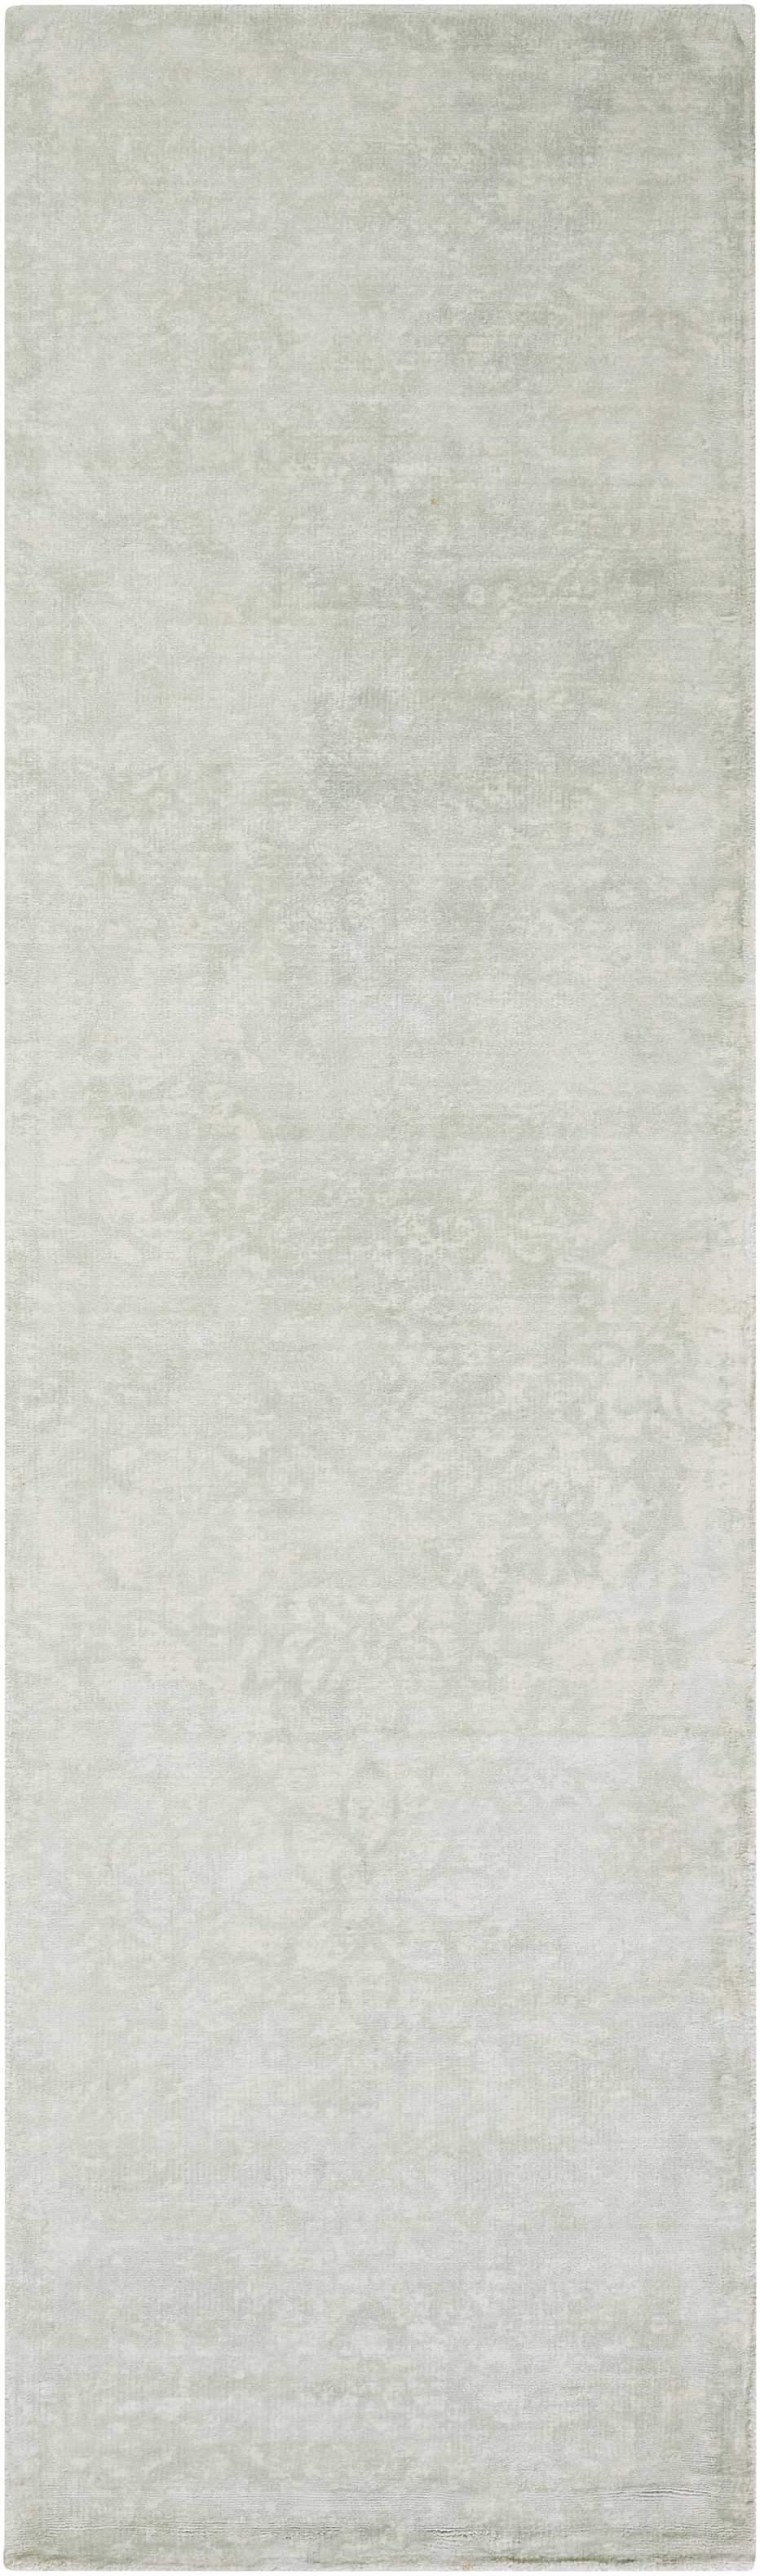 "Desert Skies Spa Rug - 5 Size Options Rugs Nourison 3'9"" x 5'9"" Accent"